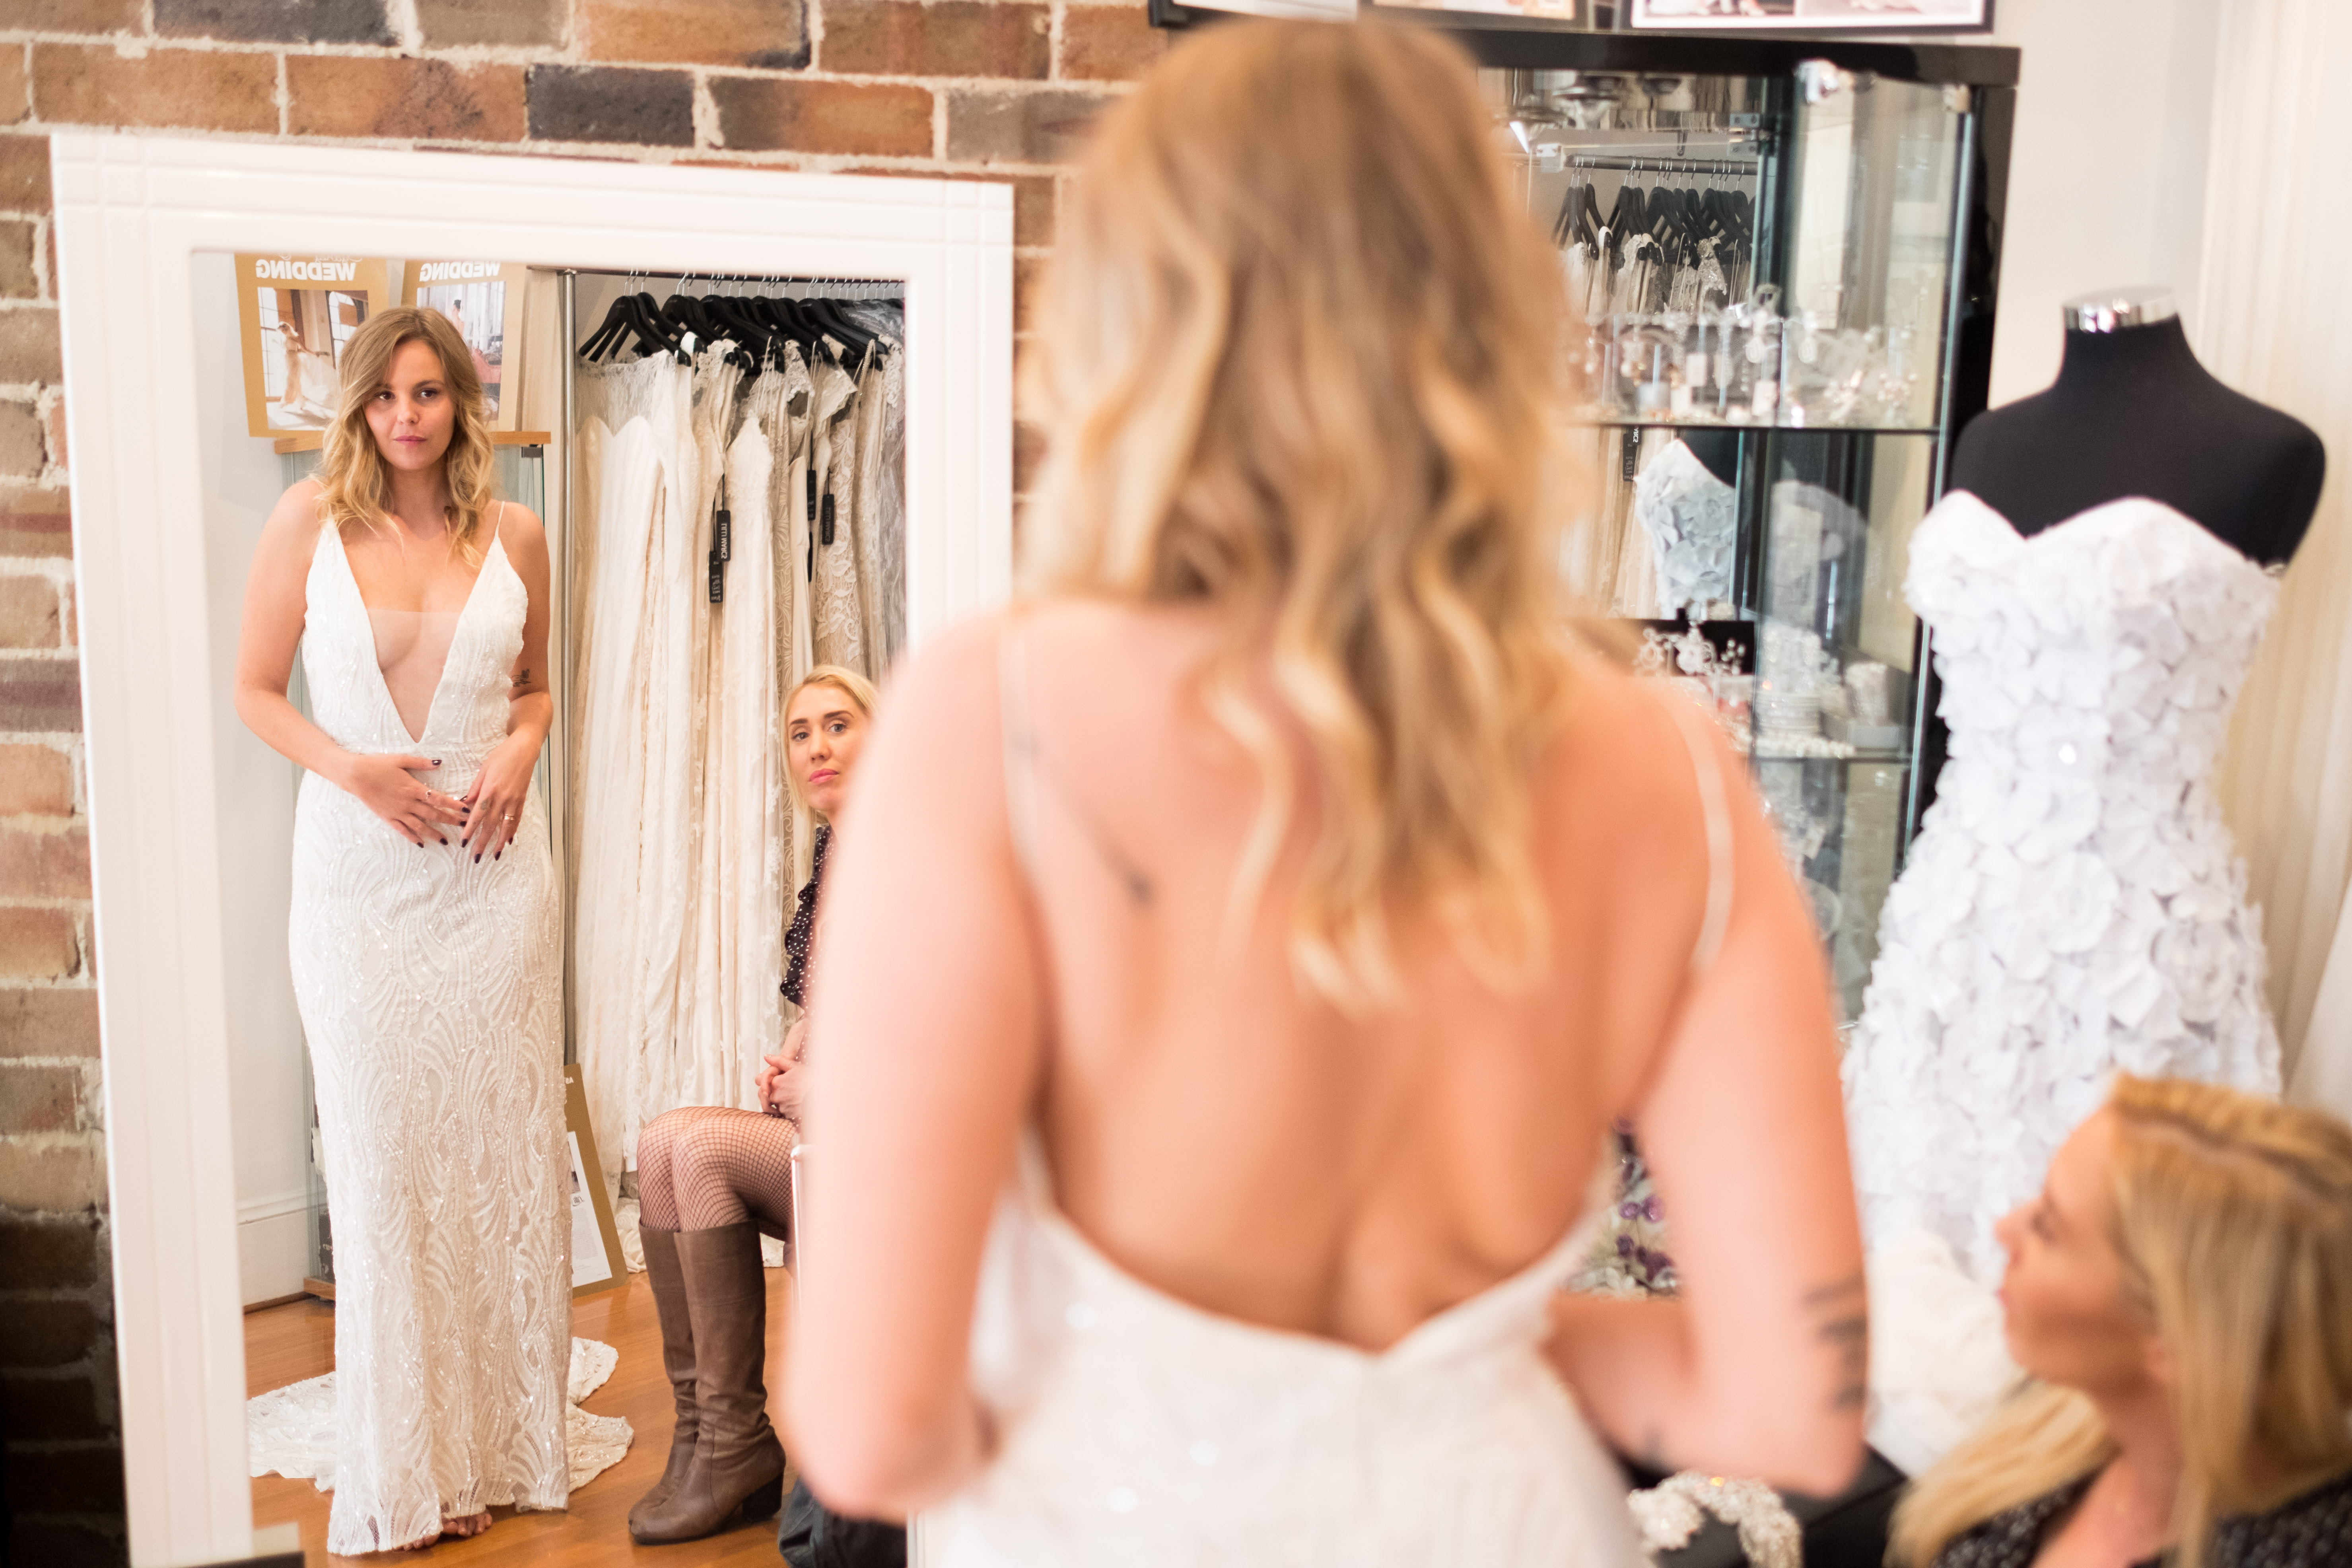 """<p>The long-awaited series return of<a href=""""https://thefix.nine.com.au/married-at-first-sight"""" target=""""_blank"""" draggable=""""false""""><em>Married at First Sight</em></a>is back, and while there is always loads of drama, all eyes are on the beautiful brides.</p> <p>The last single took the plunge last night and walked down the aisle to an unfamiliar face.</p> <p>Blair, 31, from New South Wales had her heart broken when her husband of two years cheated. She now wants more than anything to find her true soul mate and is hopeful she will do just that by putting her trust in the experiment.</p> <p>The new bride took her groom's breath away in a custom design by bridal designer<a href=""""http://lillimarcs.com.au/"""" target=""""_blank"""" draggable=""""false"""">Lilli Marcs</a>.</p> <p>It's safe to say all the ladies have wowed their husbands-to-be in their gowns on the series so far. Take a closer look at the dresses they chose for their big day.</p>"""